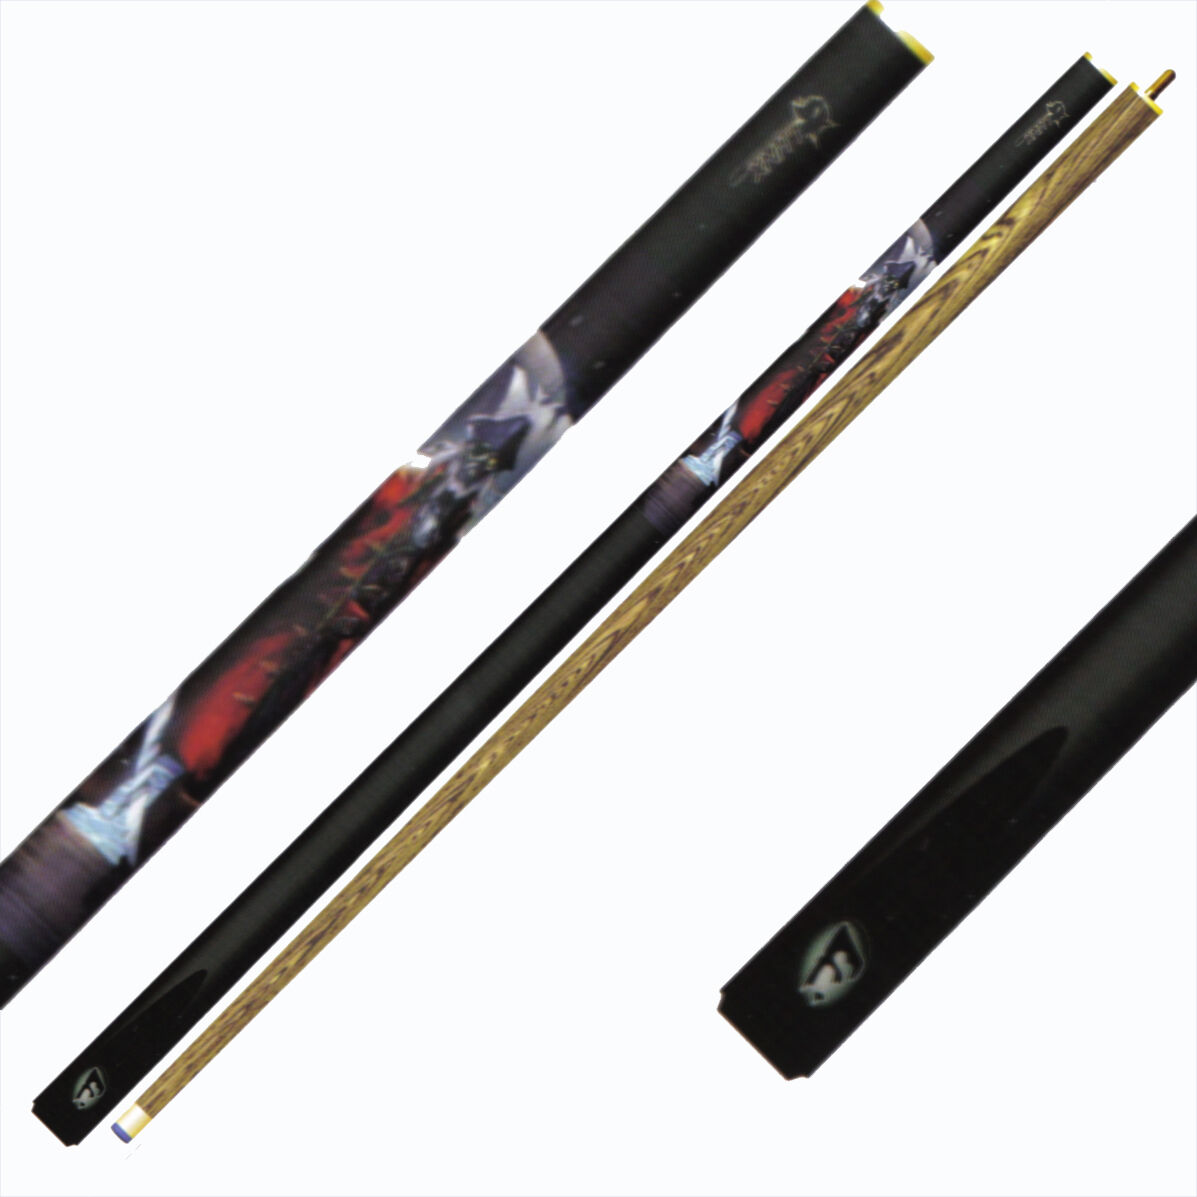 Queue de billard Canne de billards pool pool pool snooker en 2 eleHommes ts Pirates Ref.6594 e35521